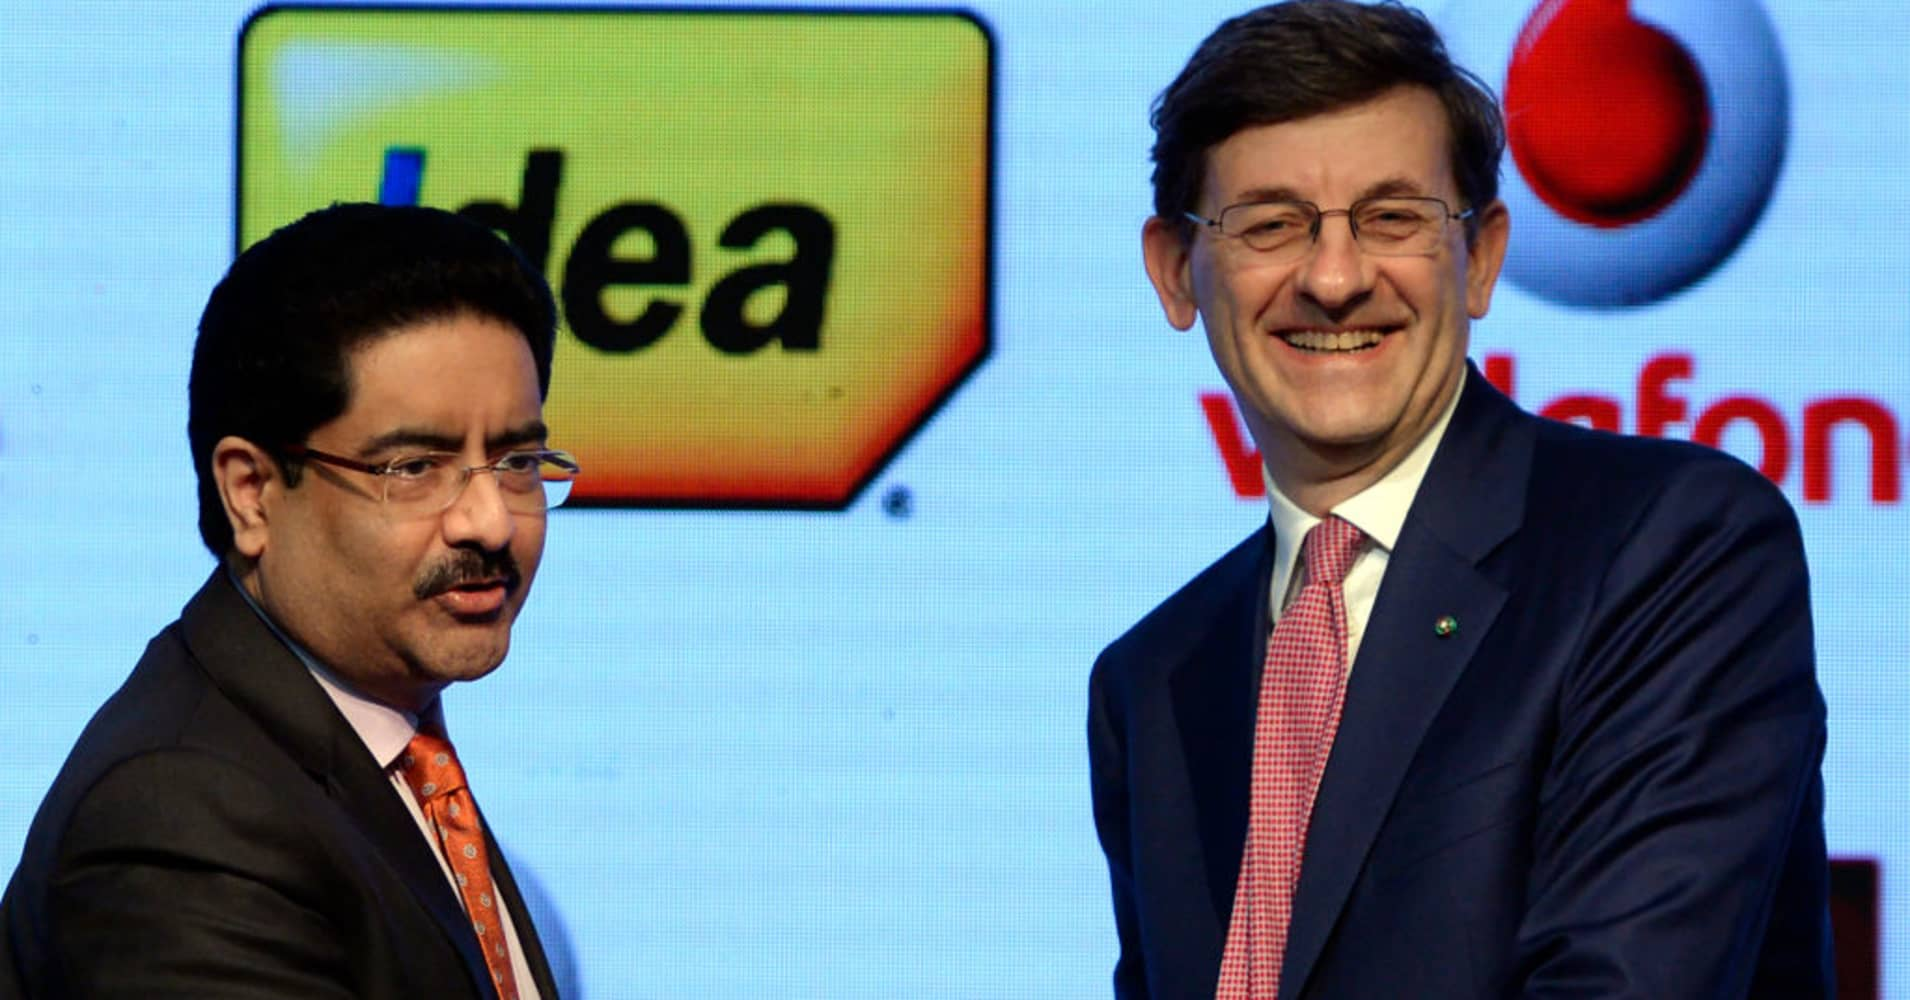 Vodafone, Idea in $23 bln deal to create new Indian telecom leader